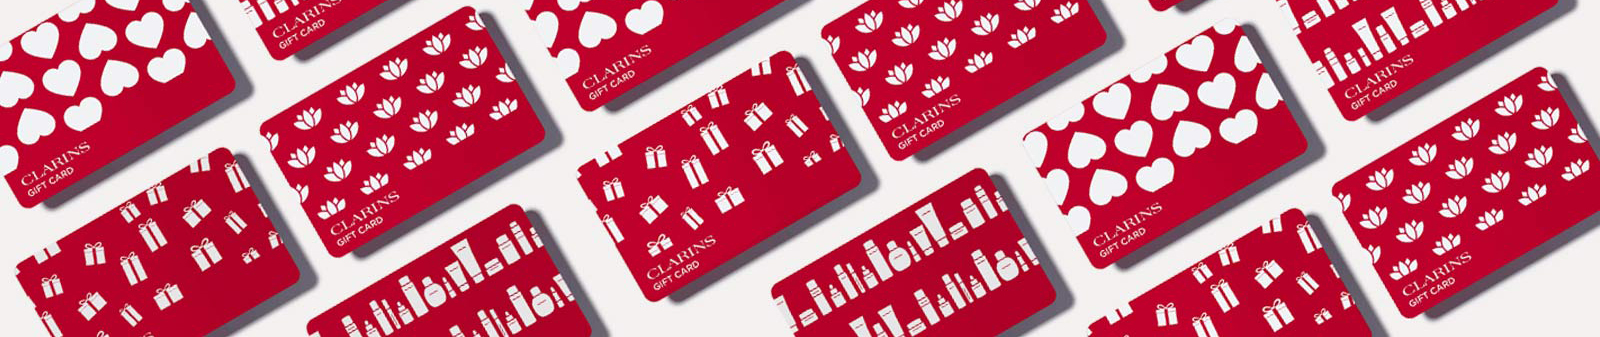 Clarins Gift Cards